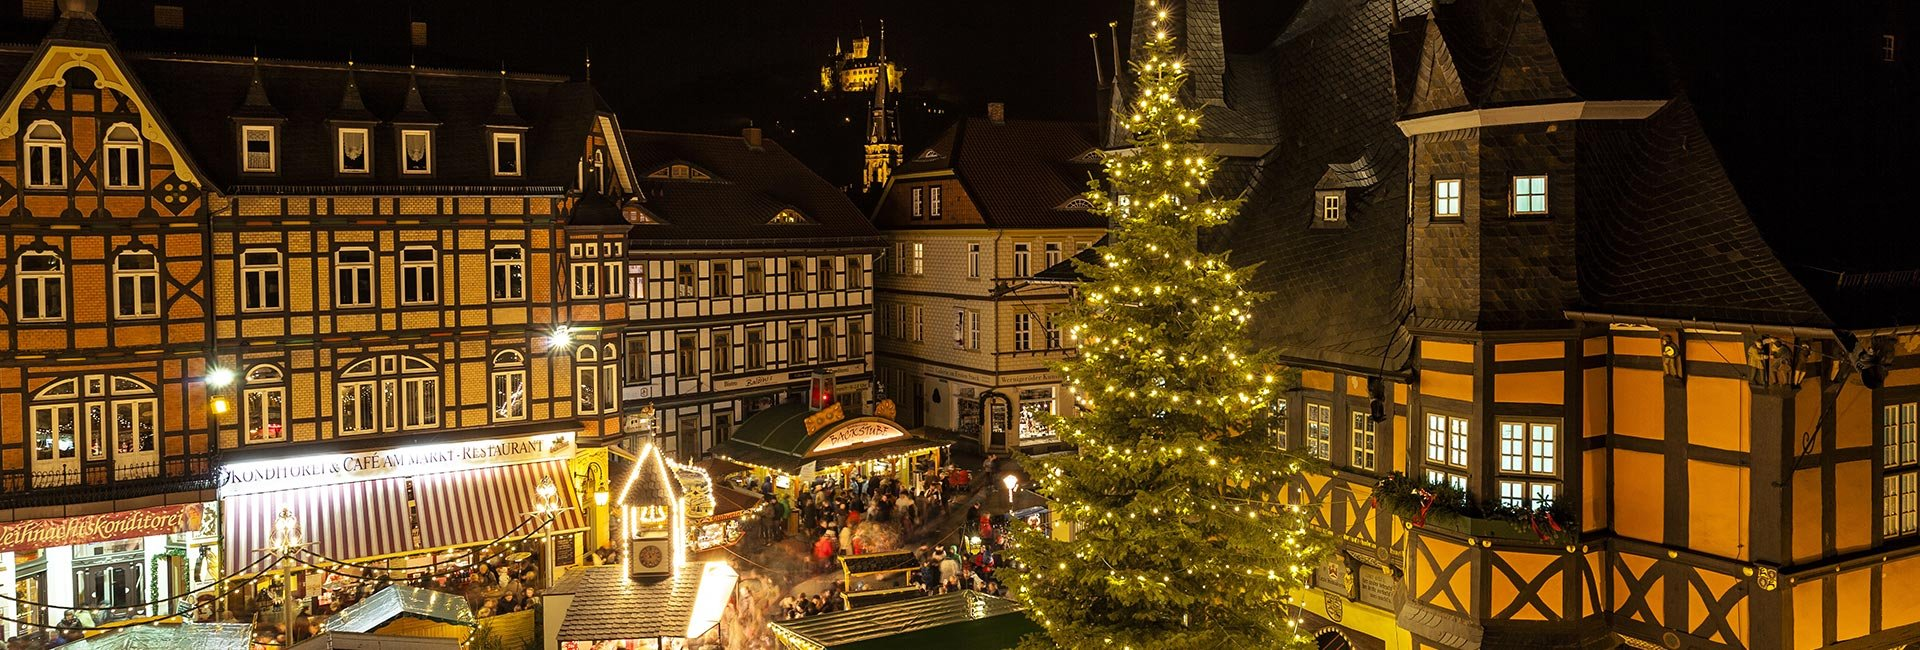 Rammelsberg Weihnachtsmarkt.Christmas Time In Wernigerode And Surroundings